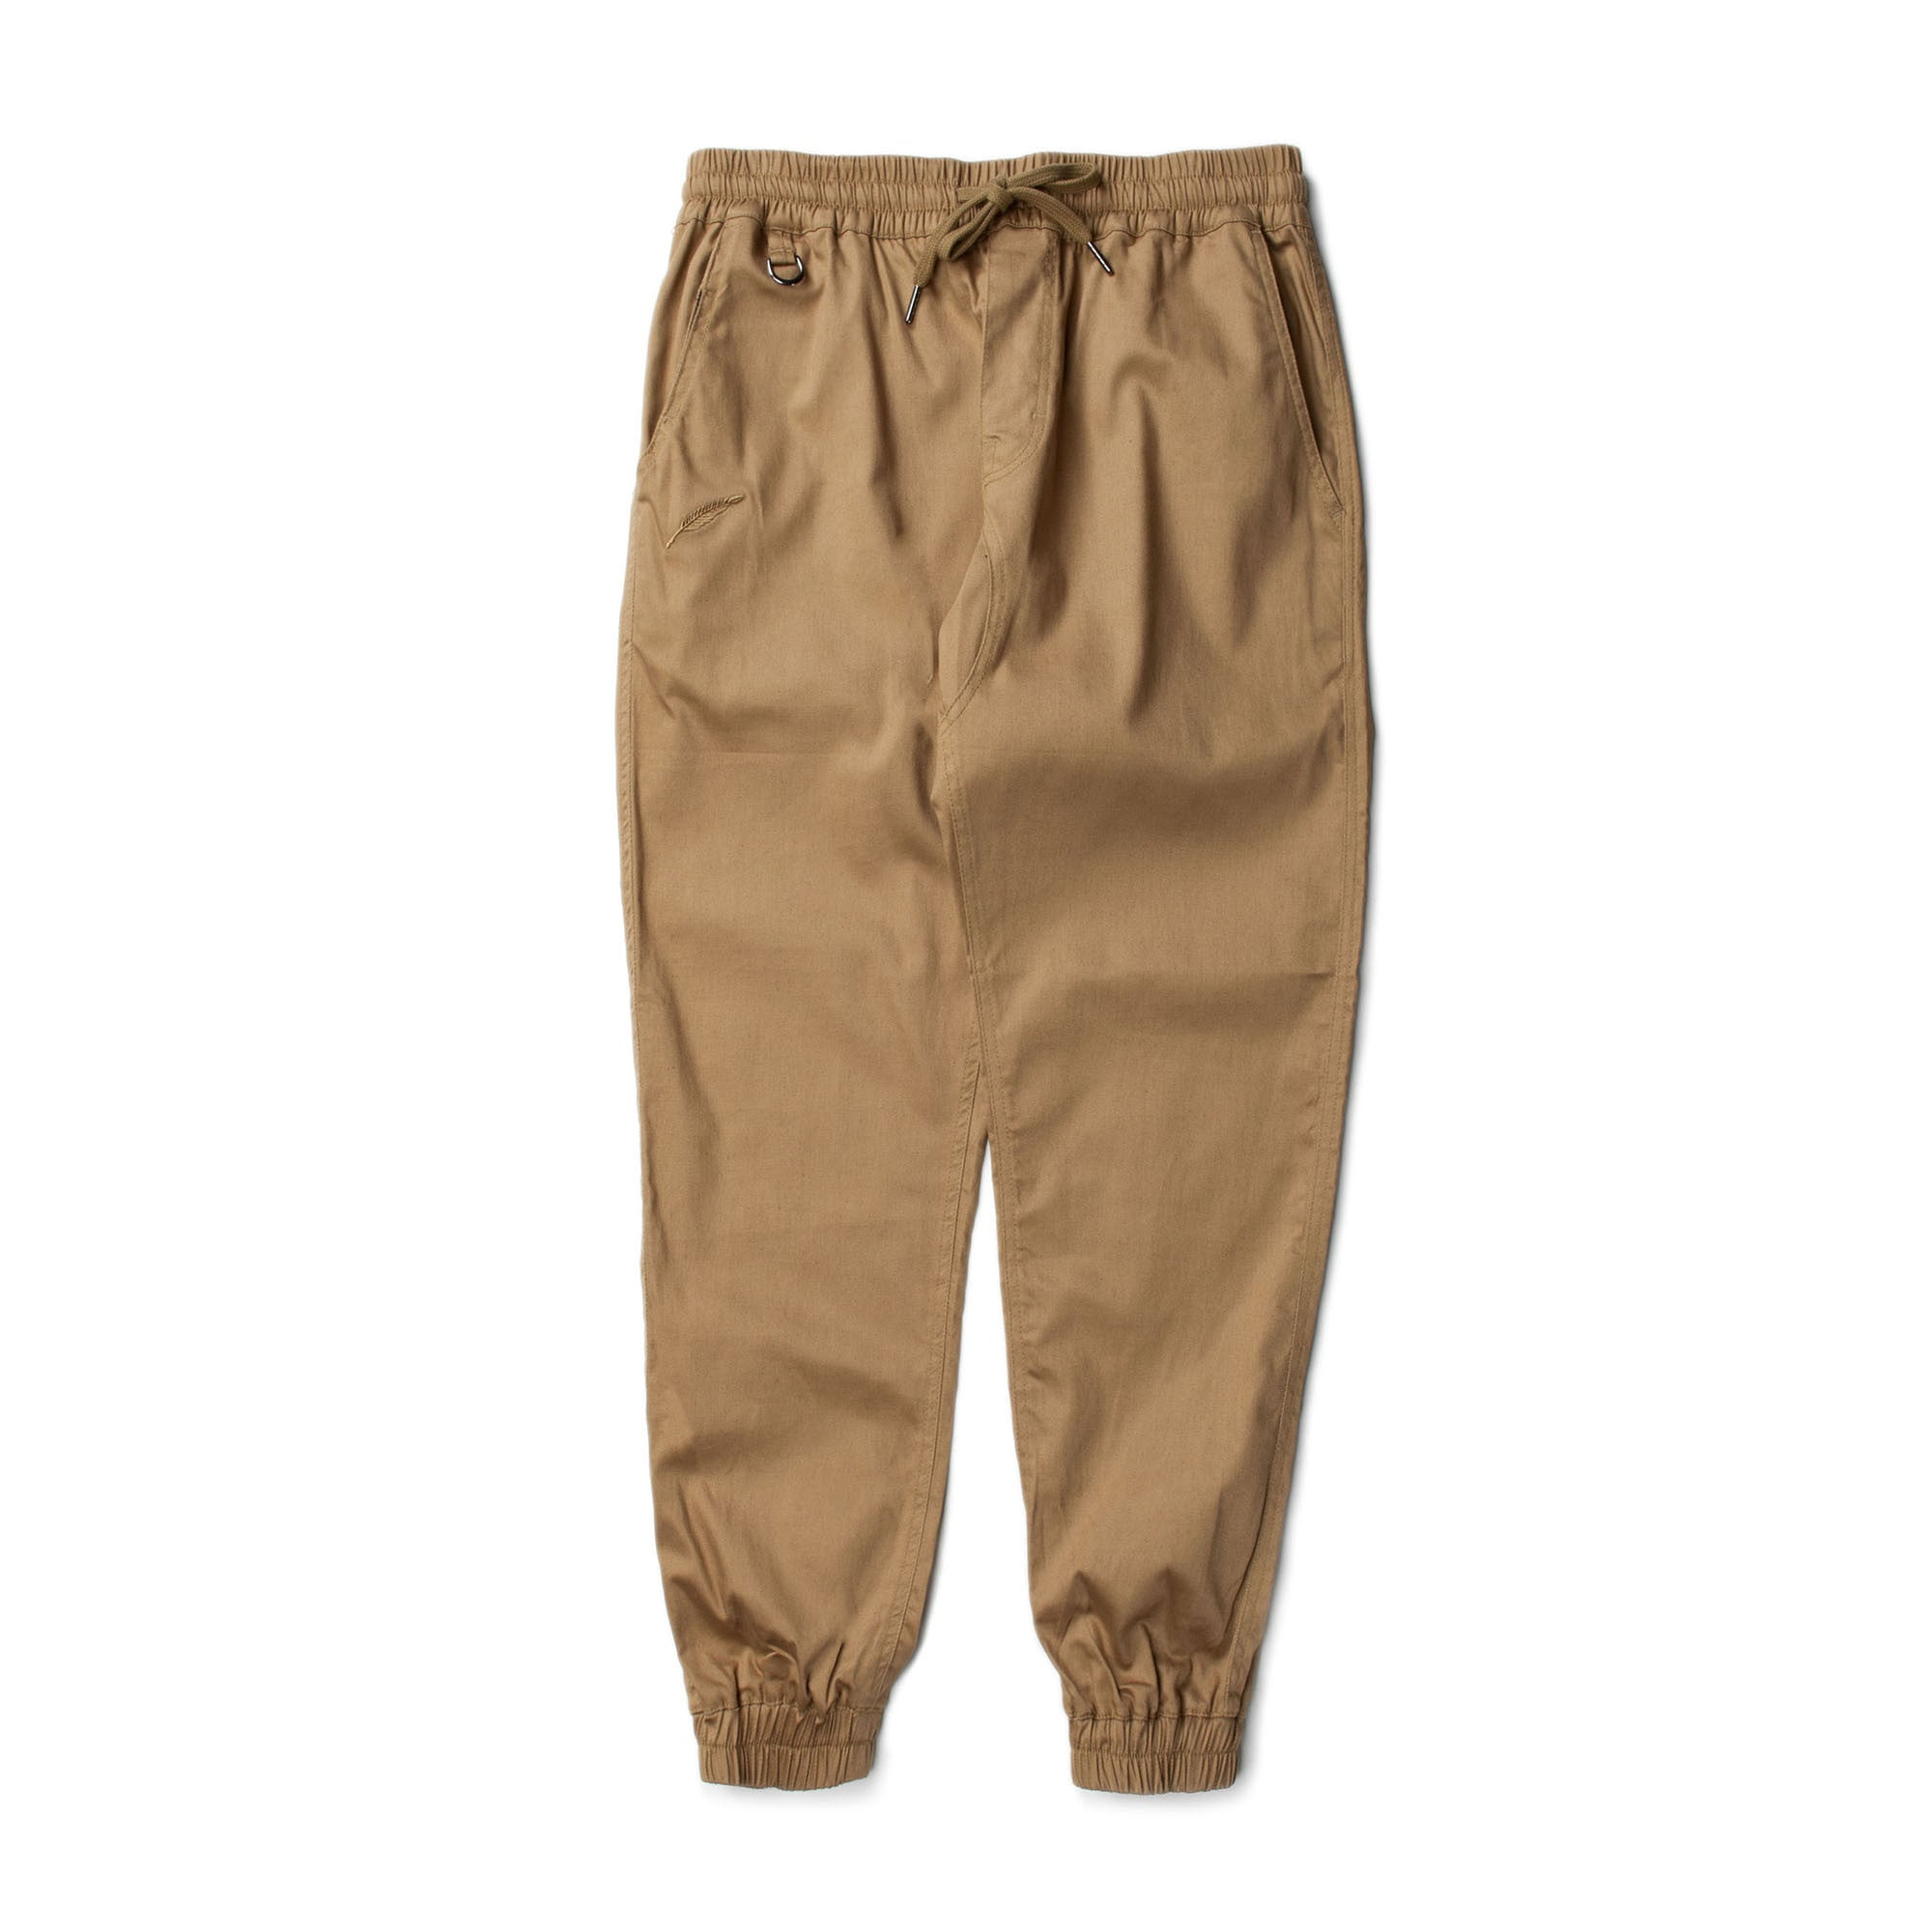 Publish Sprinter Jogger - Khaki-Pants 褲款-Navy Selected Shop